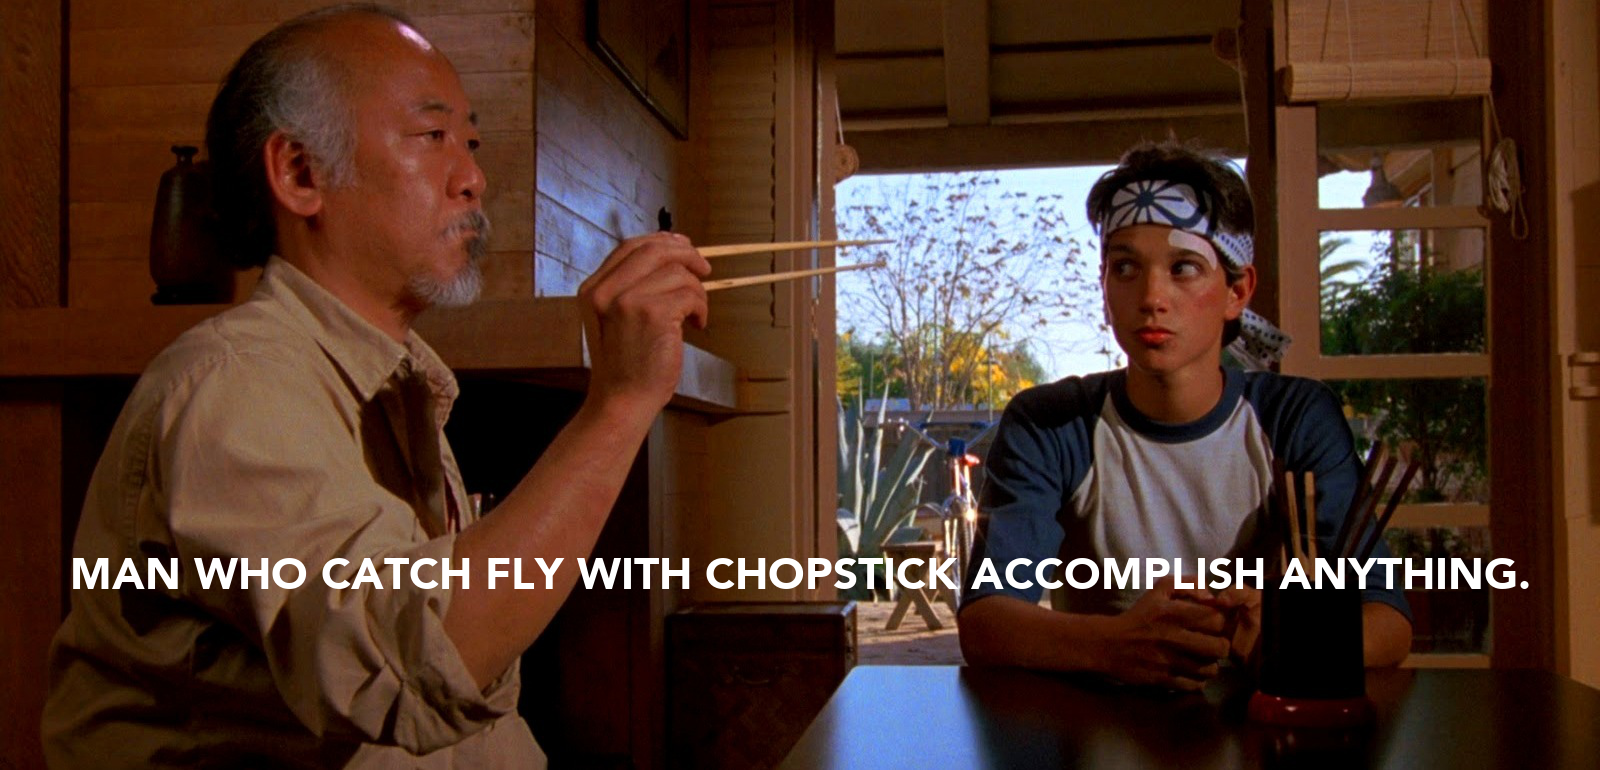 [Image: -man-who-catch-fly-with-chopstick-accomp...thing-.png]